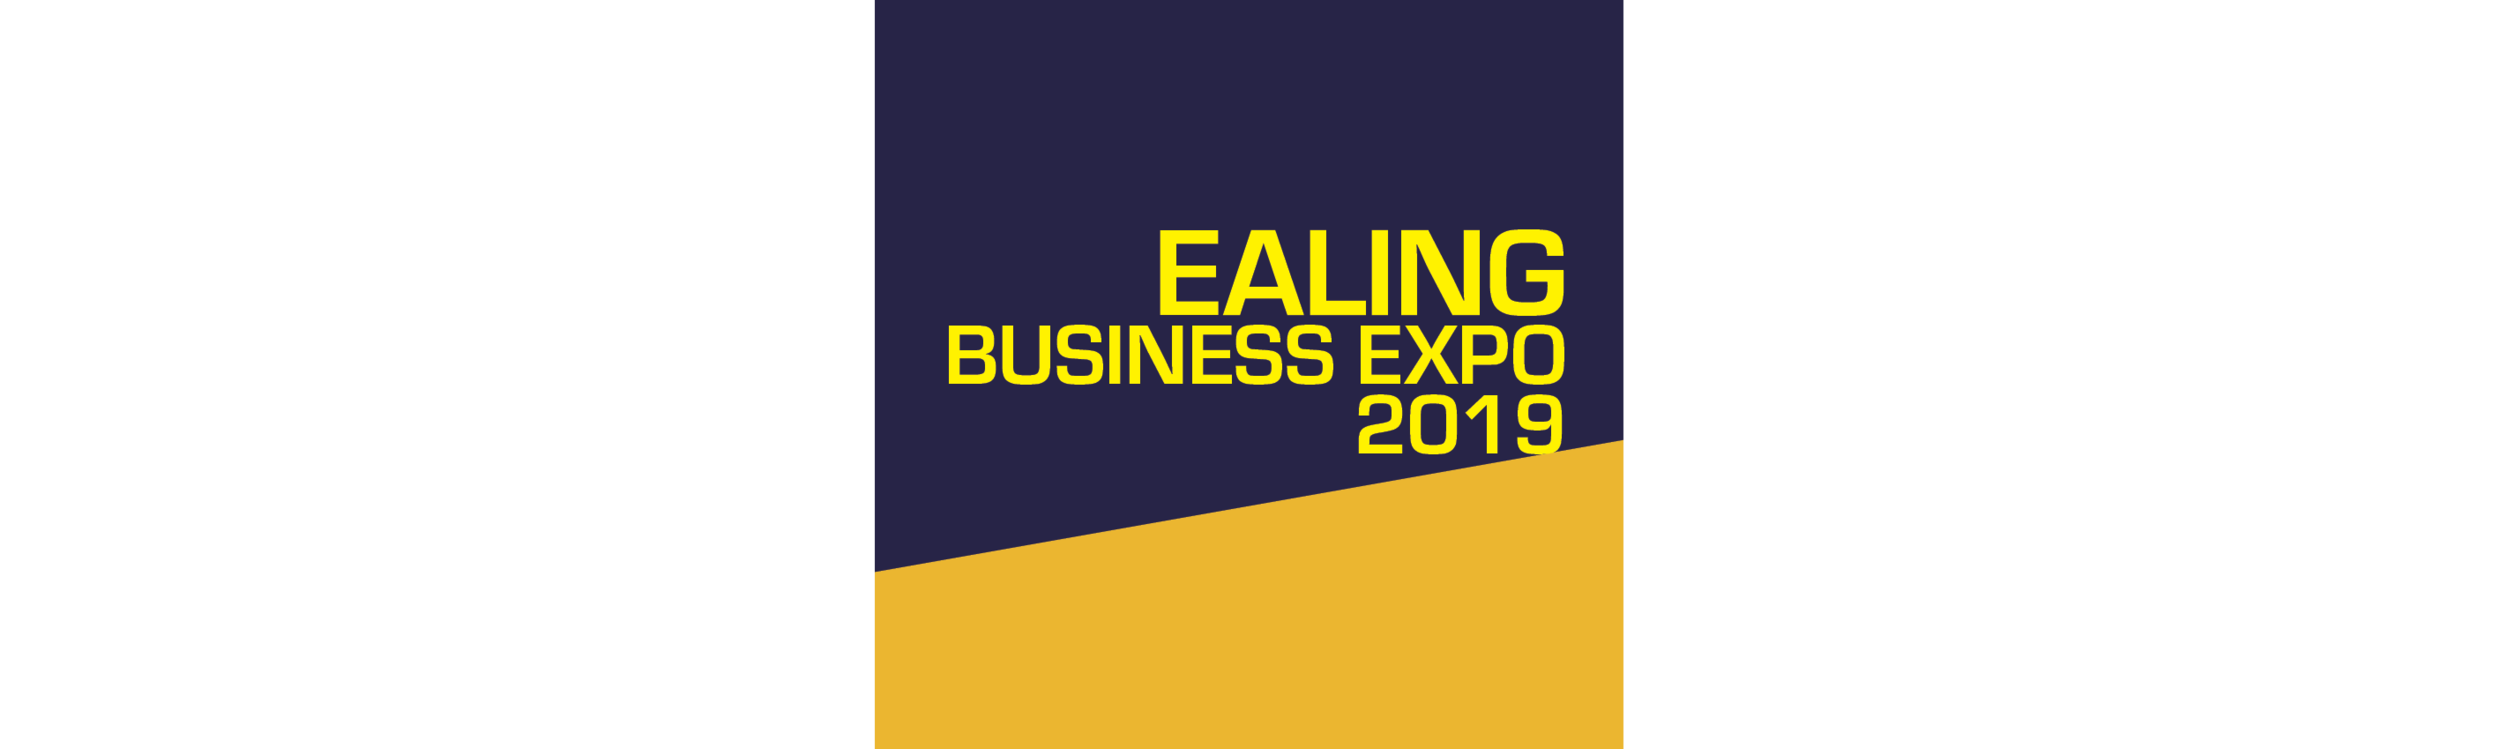 Ealing Business Expo -